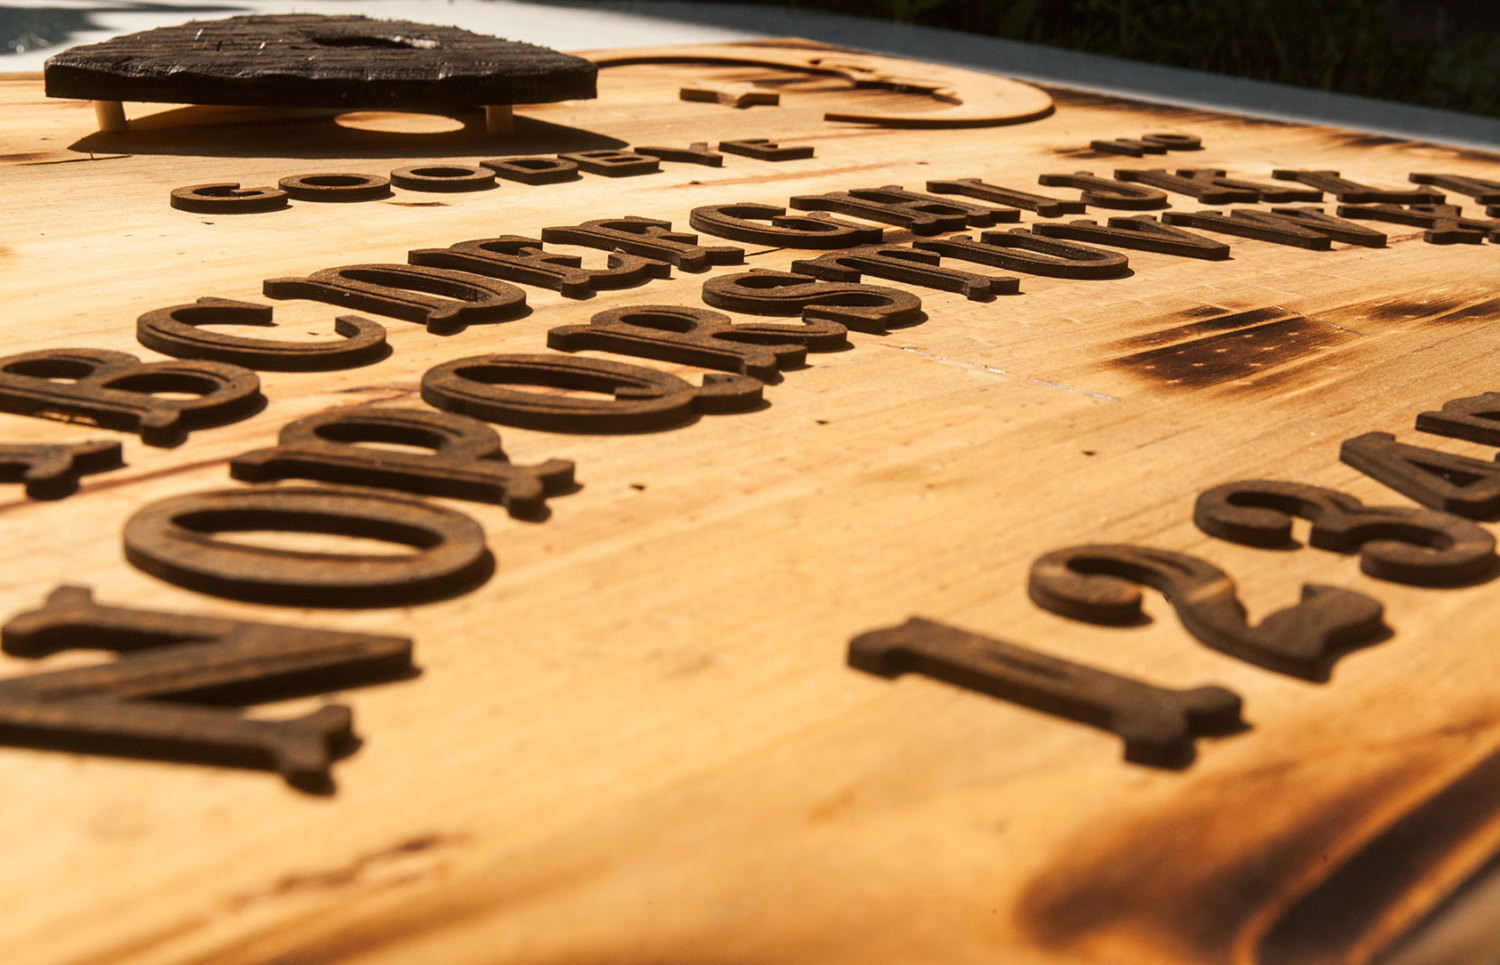 3D sculptured wall hanging wooden Ouija board Art., rustic, sepia ...